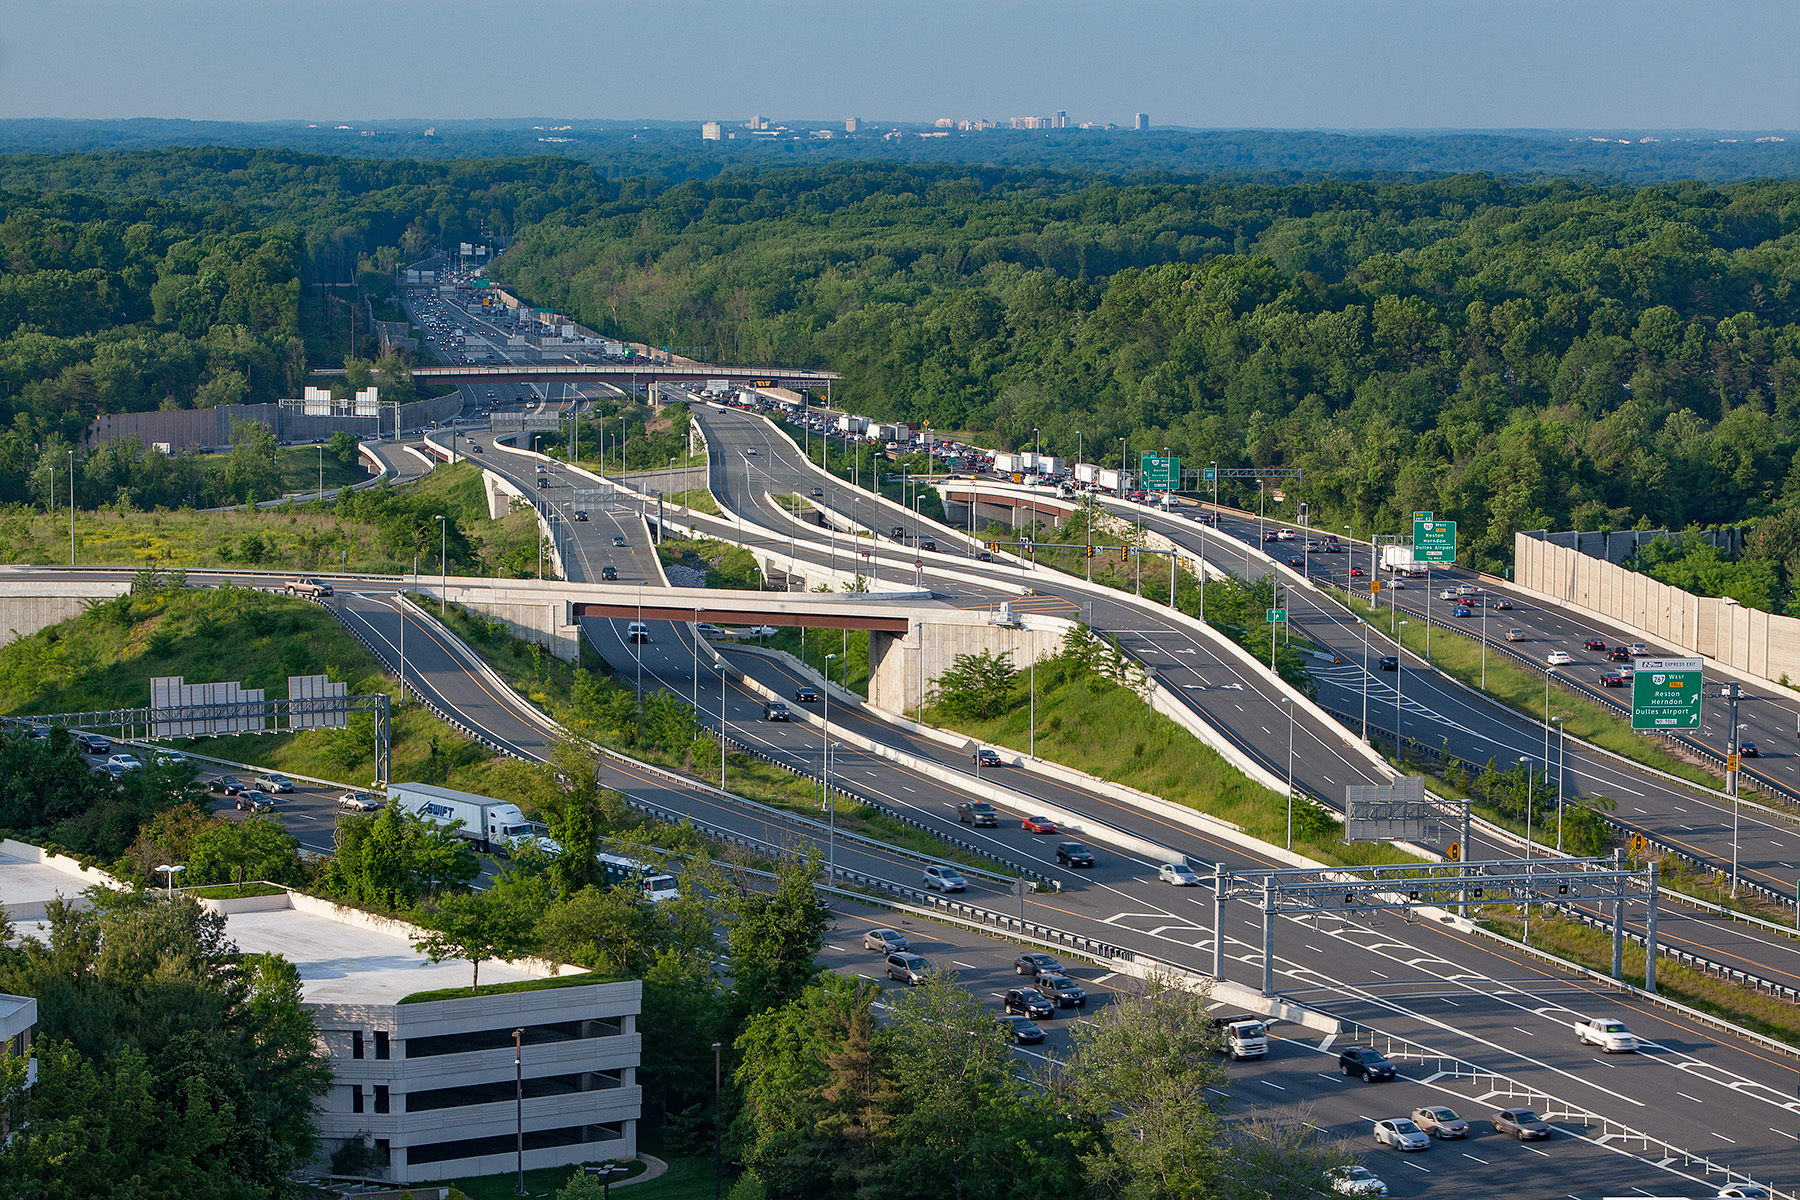 495 Express Lanes entrance